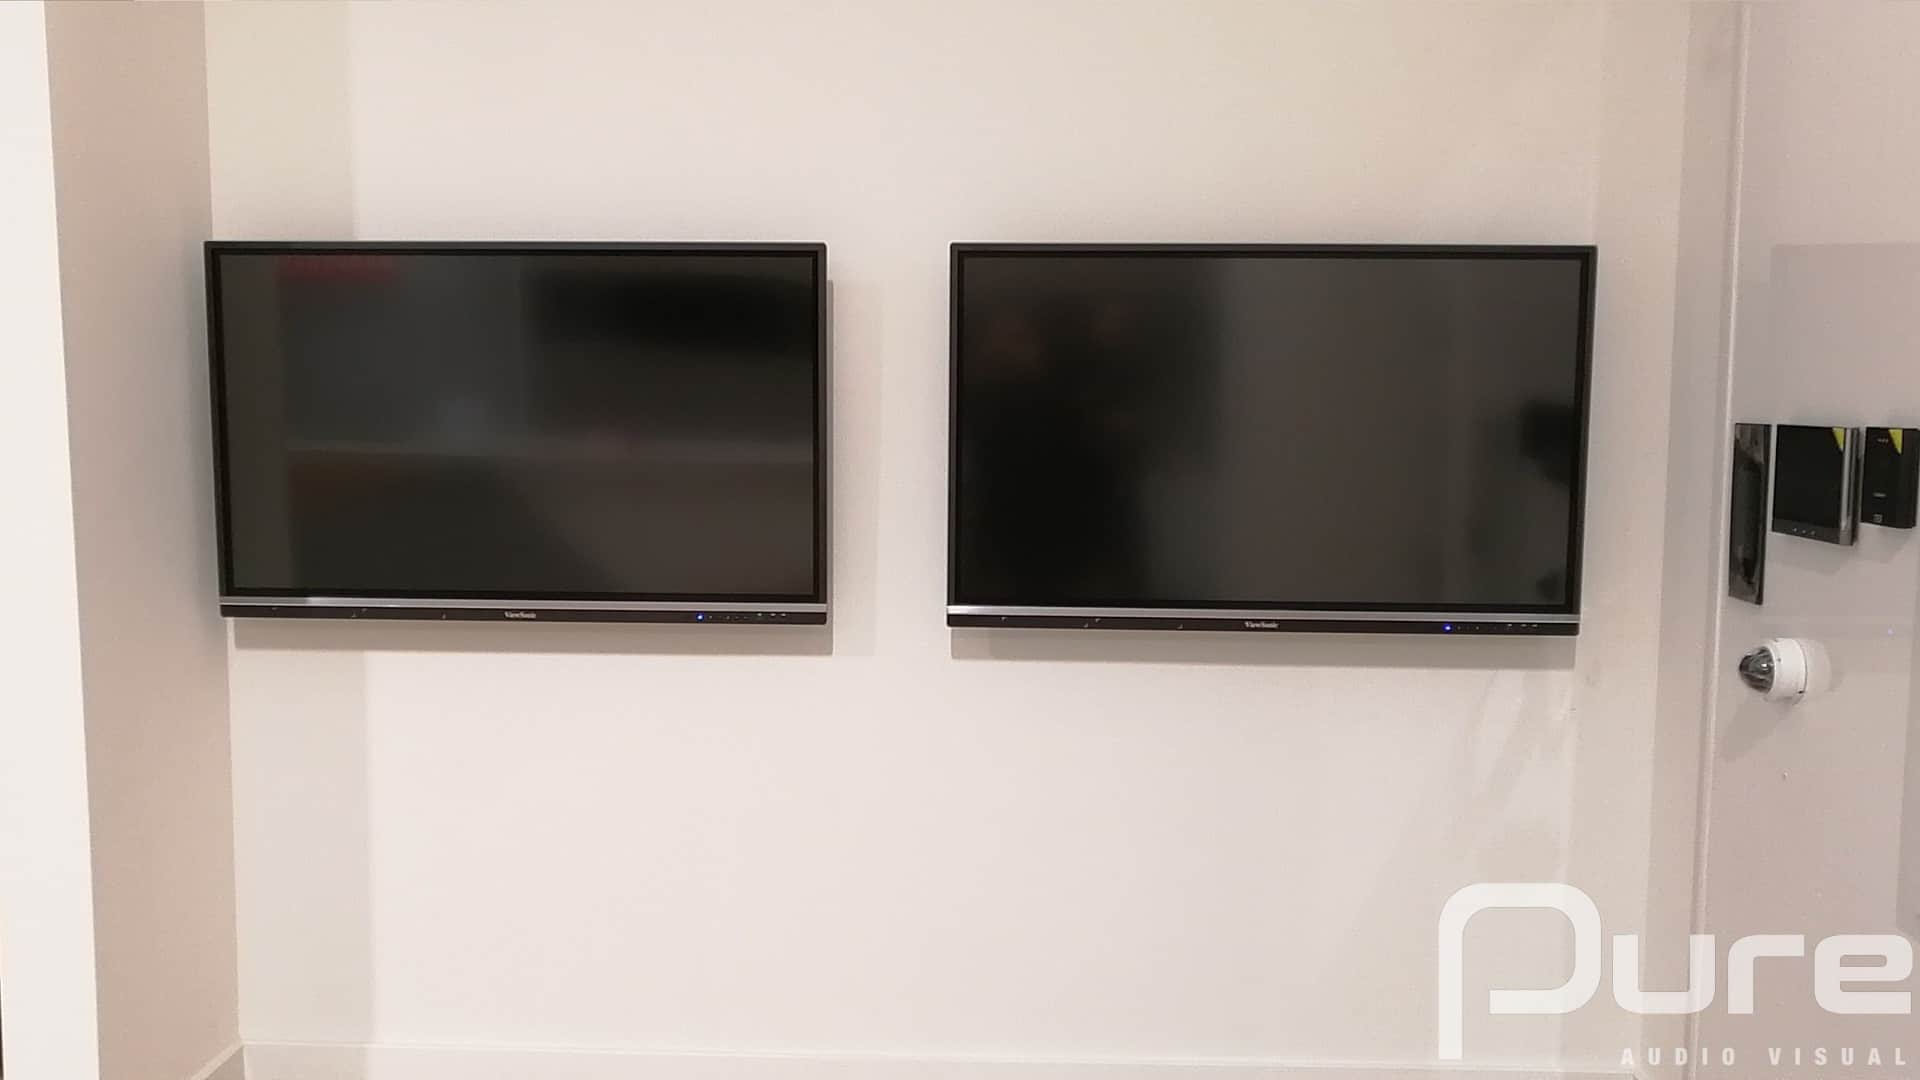 Touch display audio visual install